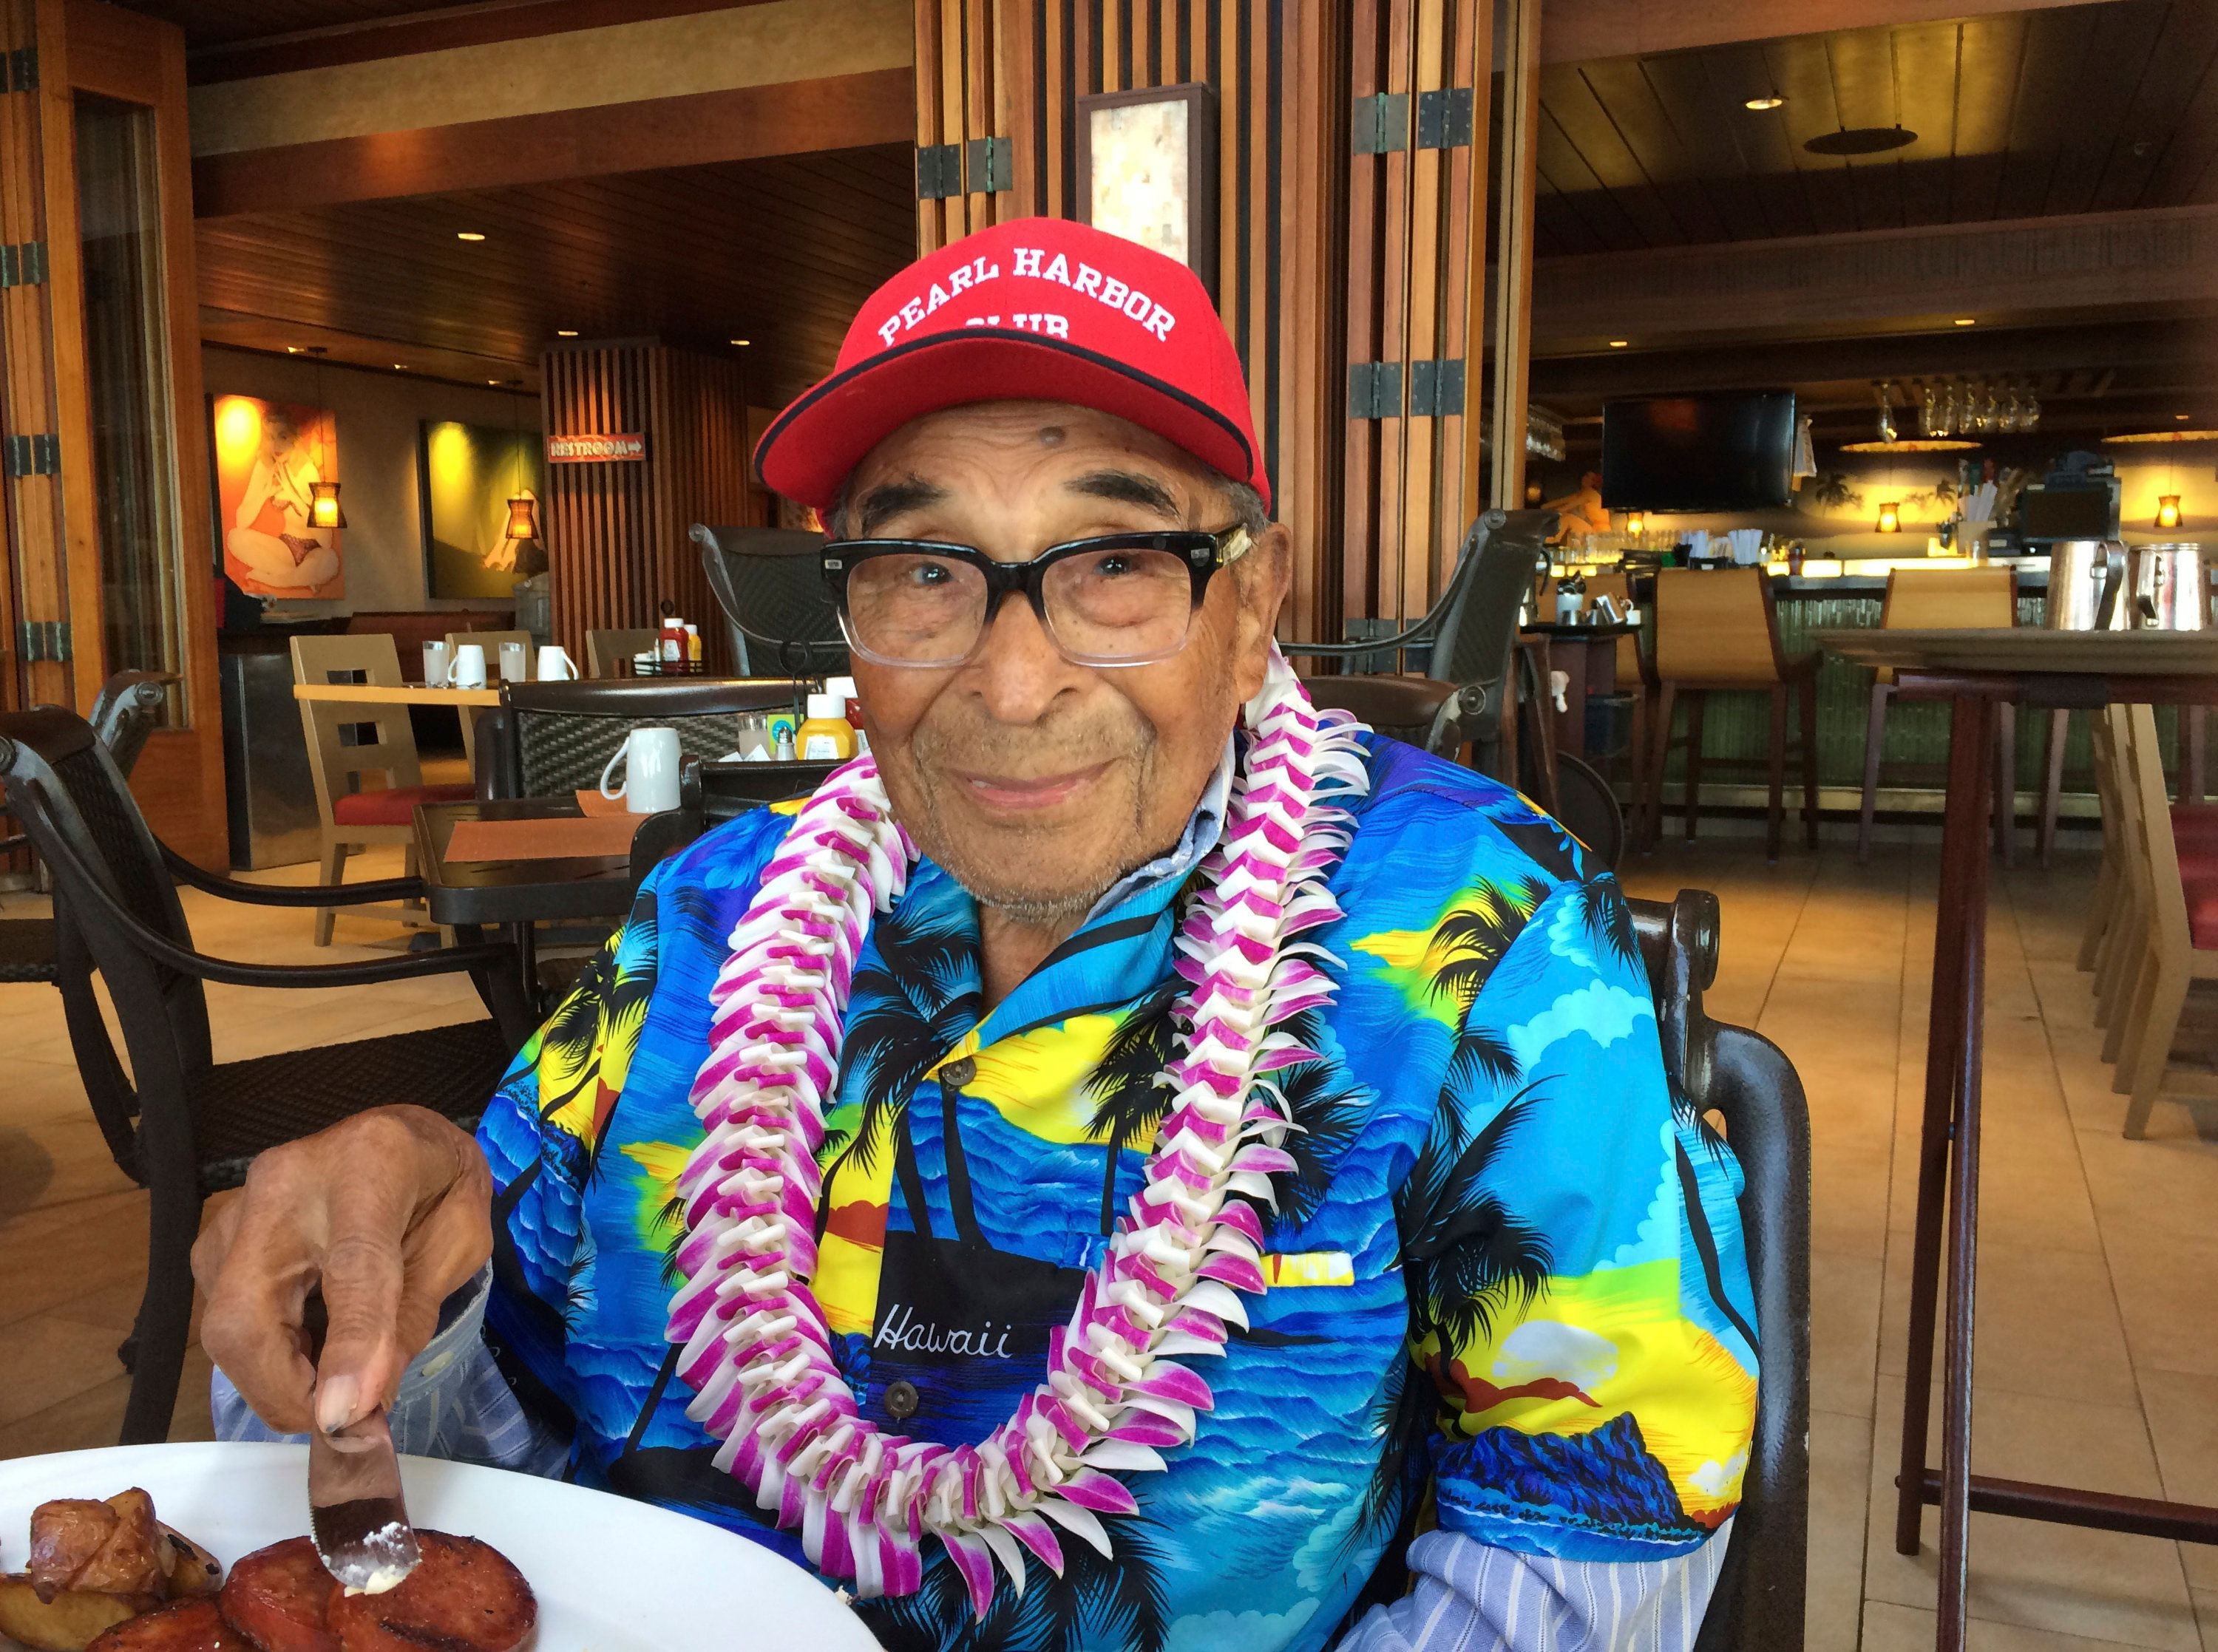 Pearl Harbor survivor Ray Chavez poses for a photo while eating breakfast in Honolulu. (Audrey McAvoy/AP)